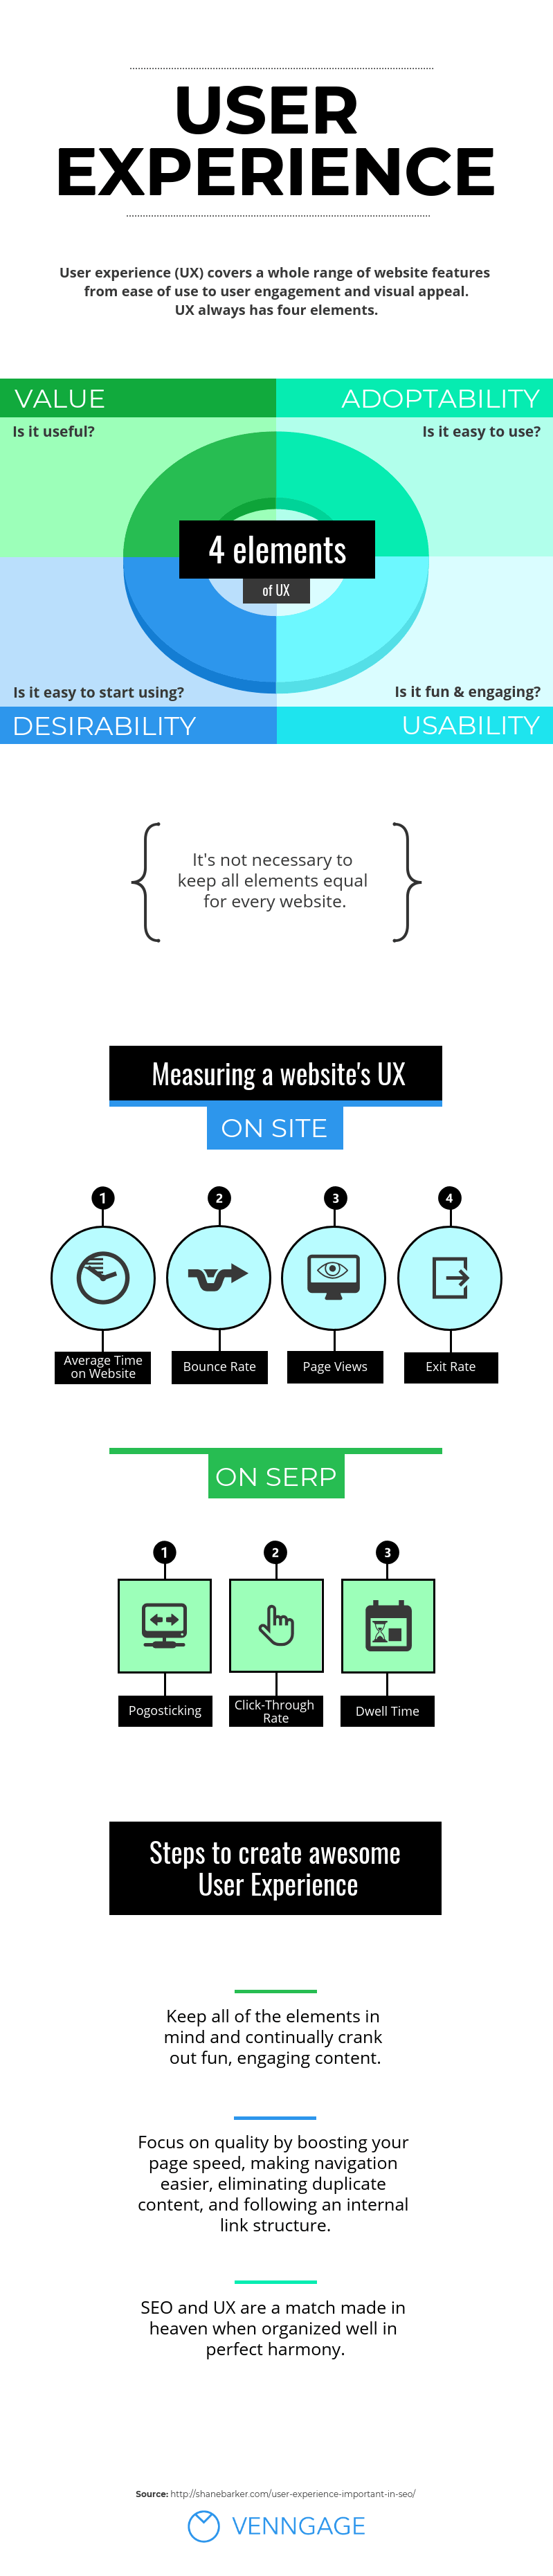 User Experience Infographic Template